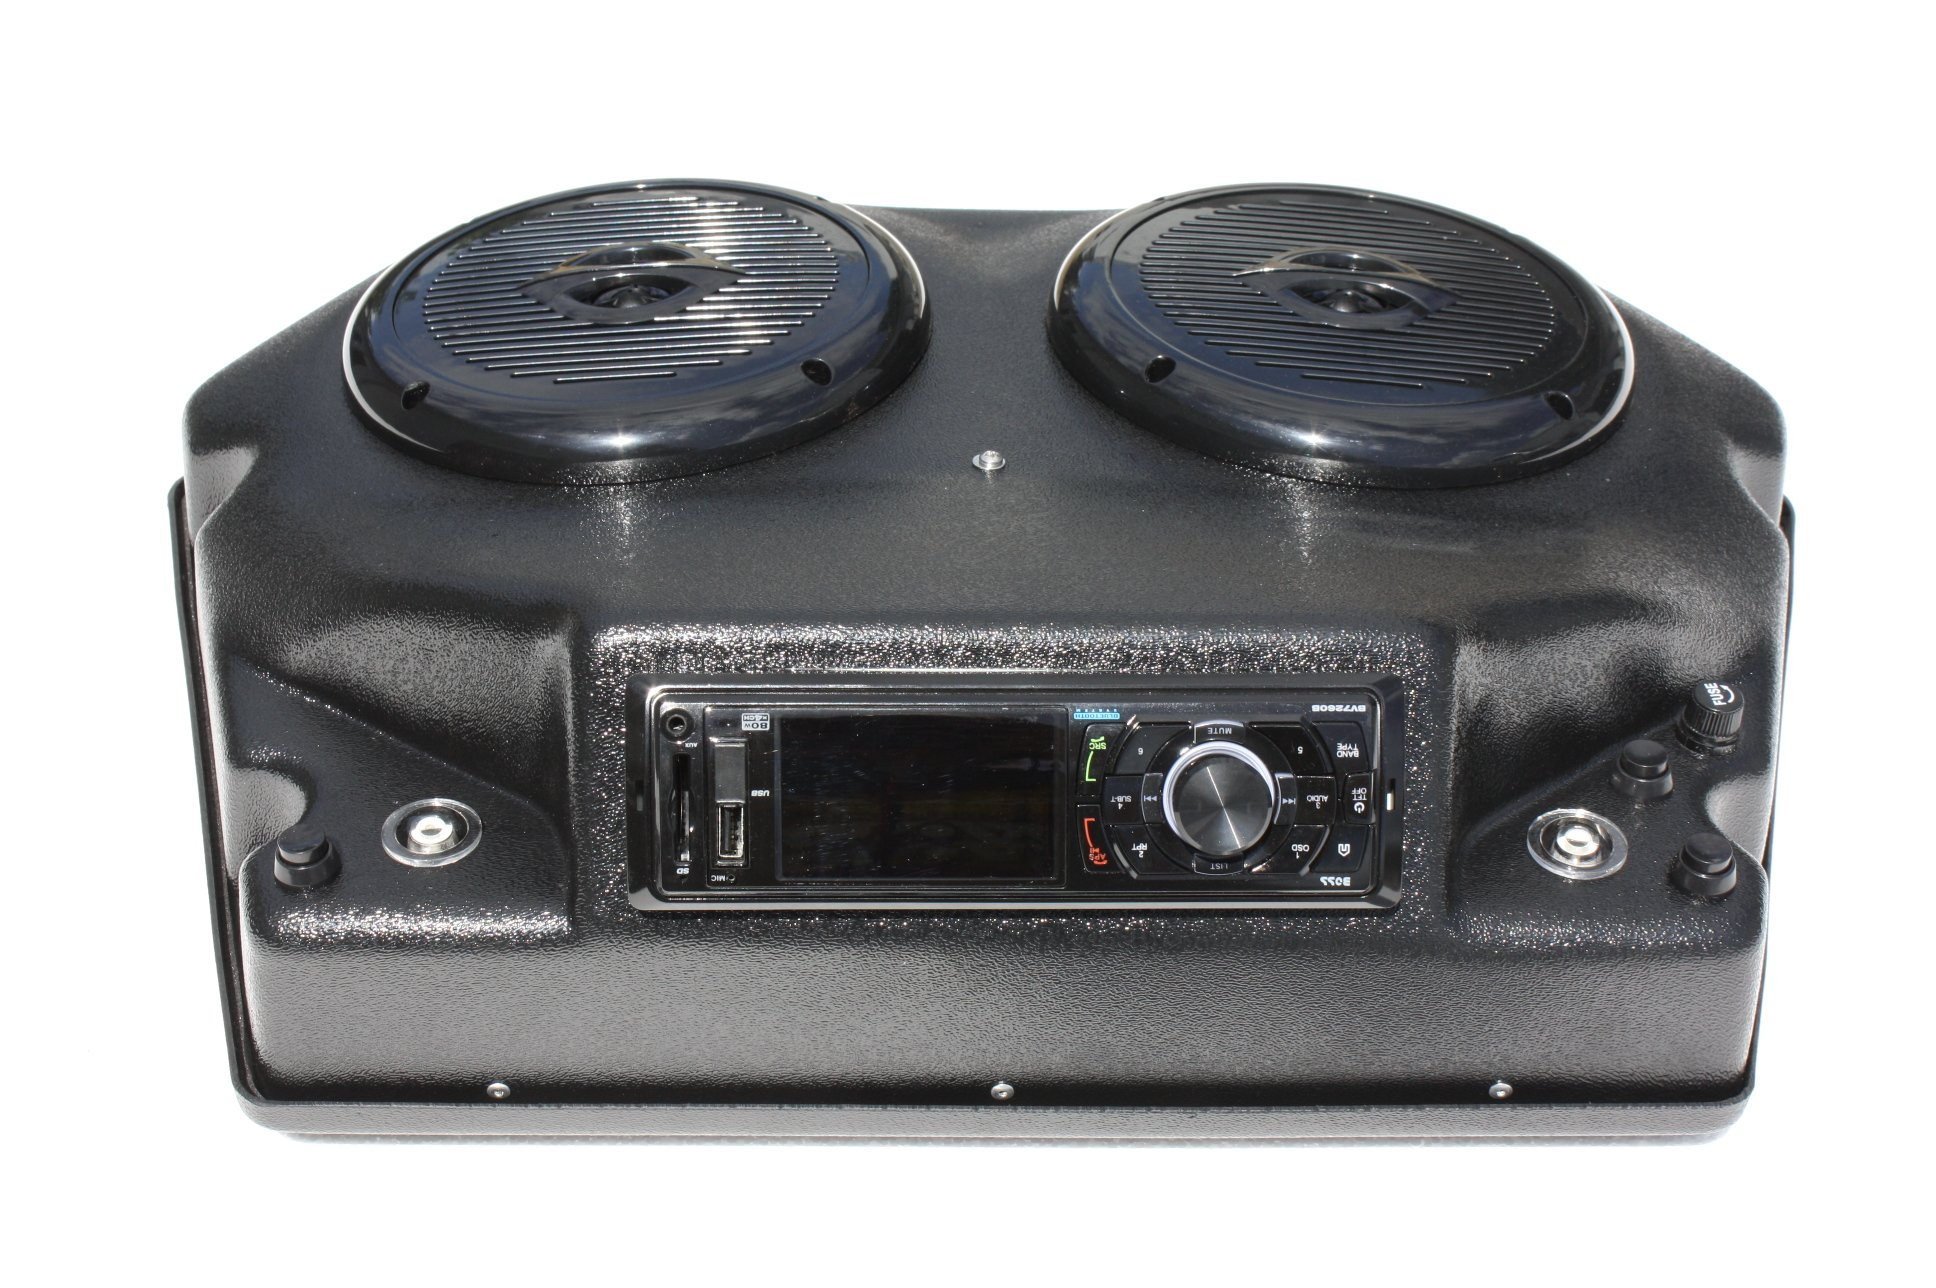 Radio Stereo Console for Polaris RZR 570,800 by Warehouse Hobbies Inc.